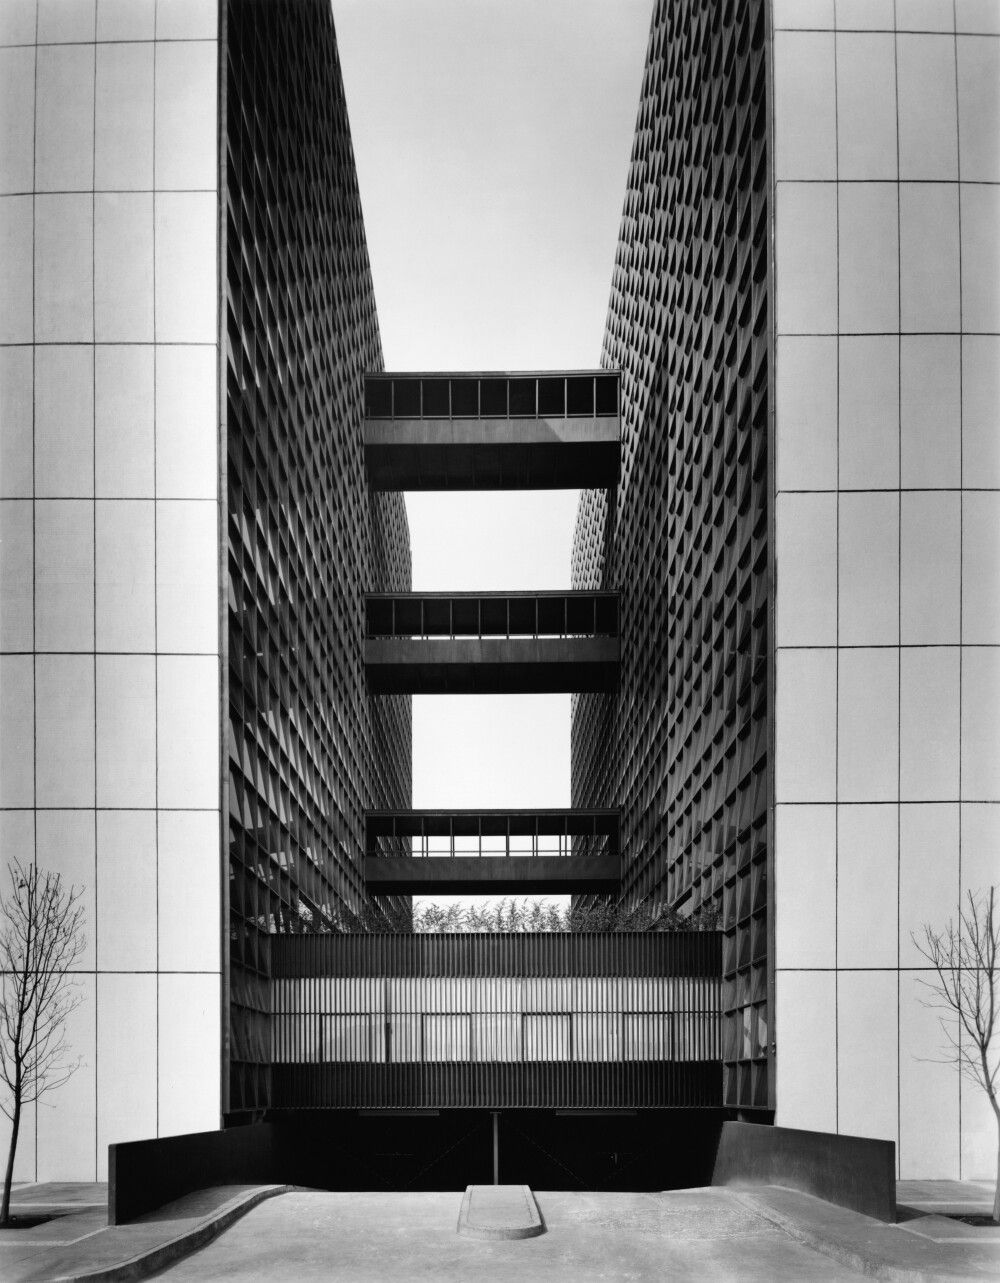 Palace of justice mexico city architecture pinterest - Arquitectos en zamora ...